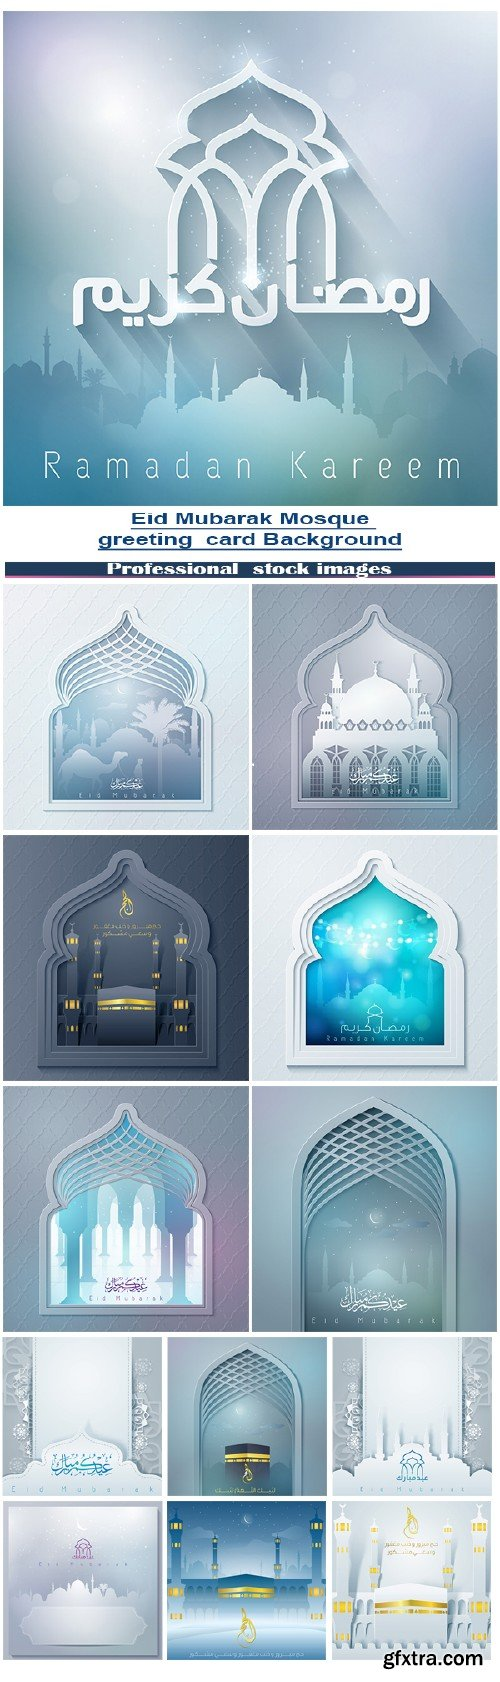 Eid Mubarak Mosque greeting card background